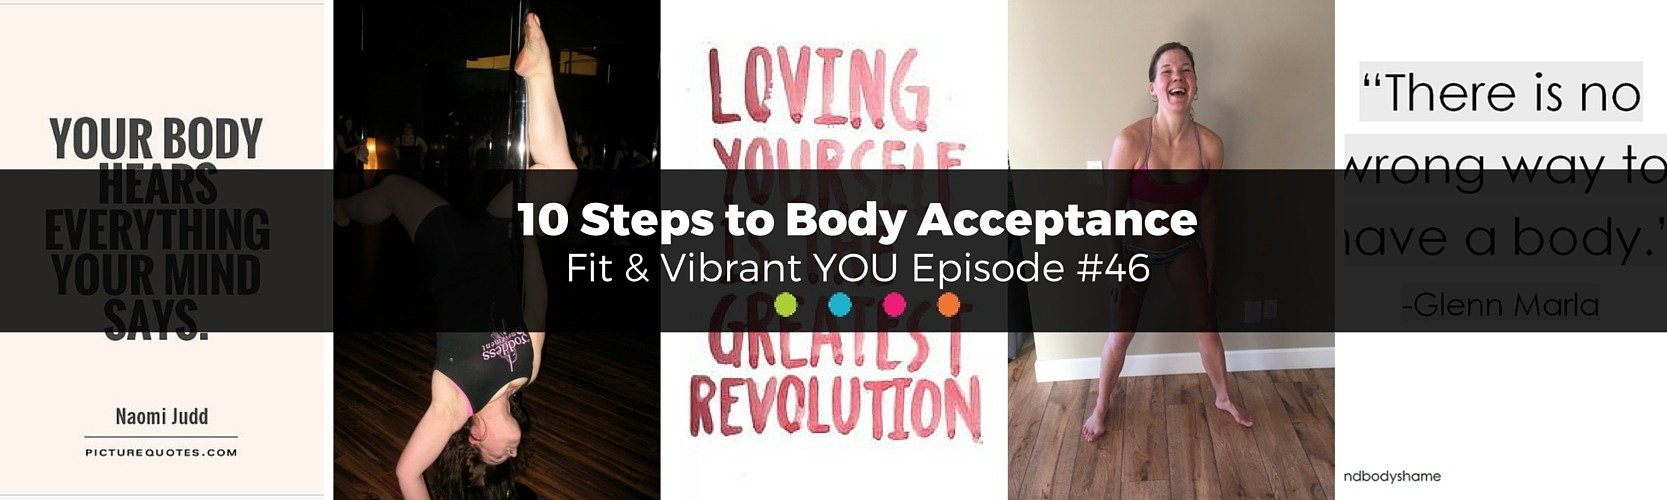 FVY 46: 10 Steps to Body Acceptance